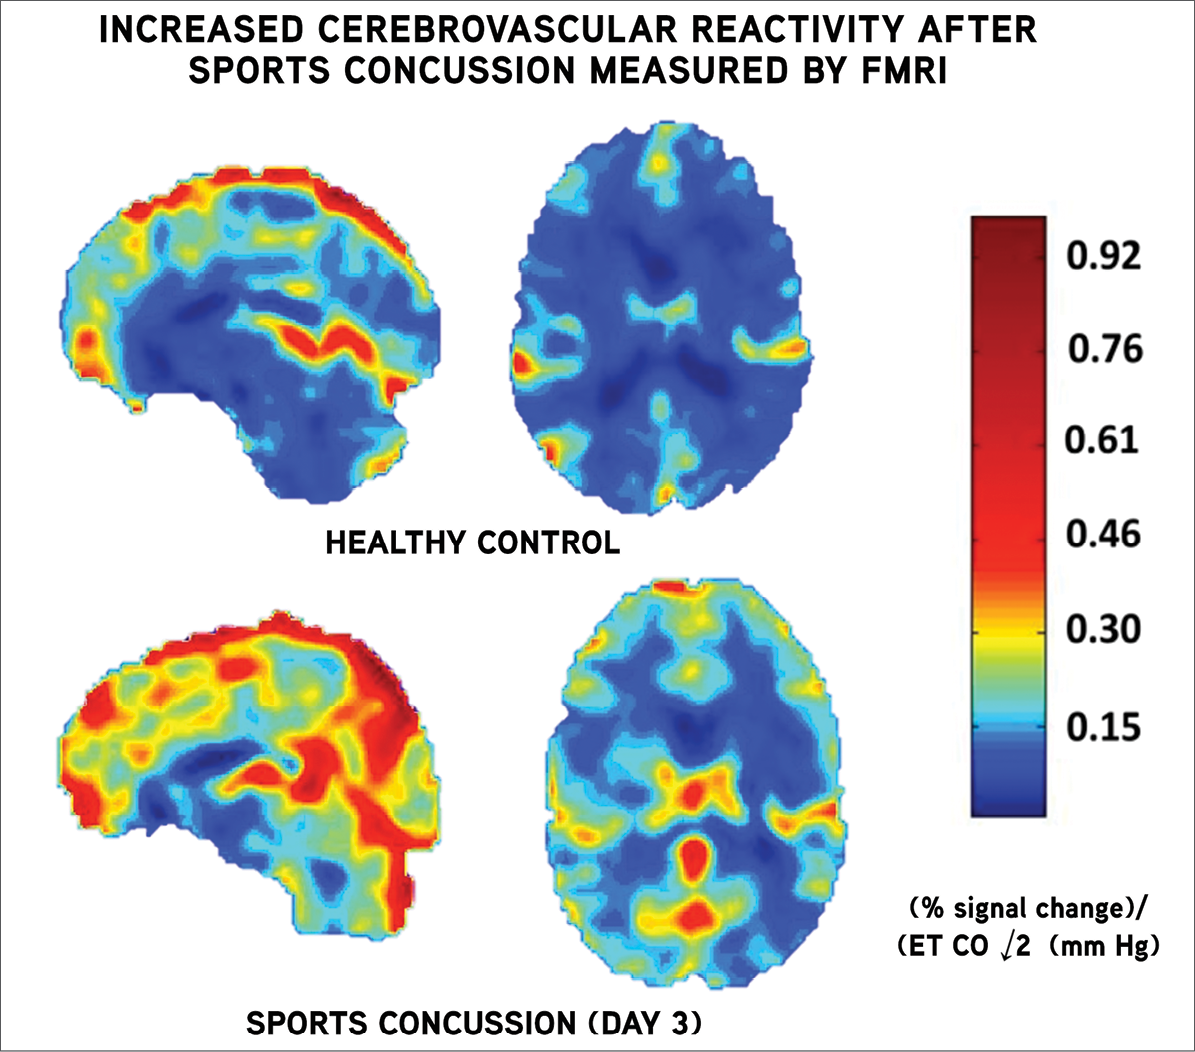 In research presented at RSNA 2014, authors demonstrated that cerebrovascular reactivity (CVR) measured by functional MRI (fMRI) was increased in the first few days after sports concussion compared to healthy, age-matched control subjects.